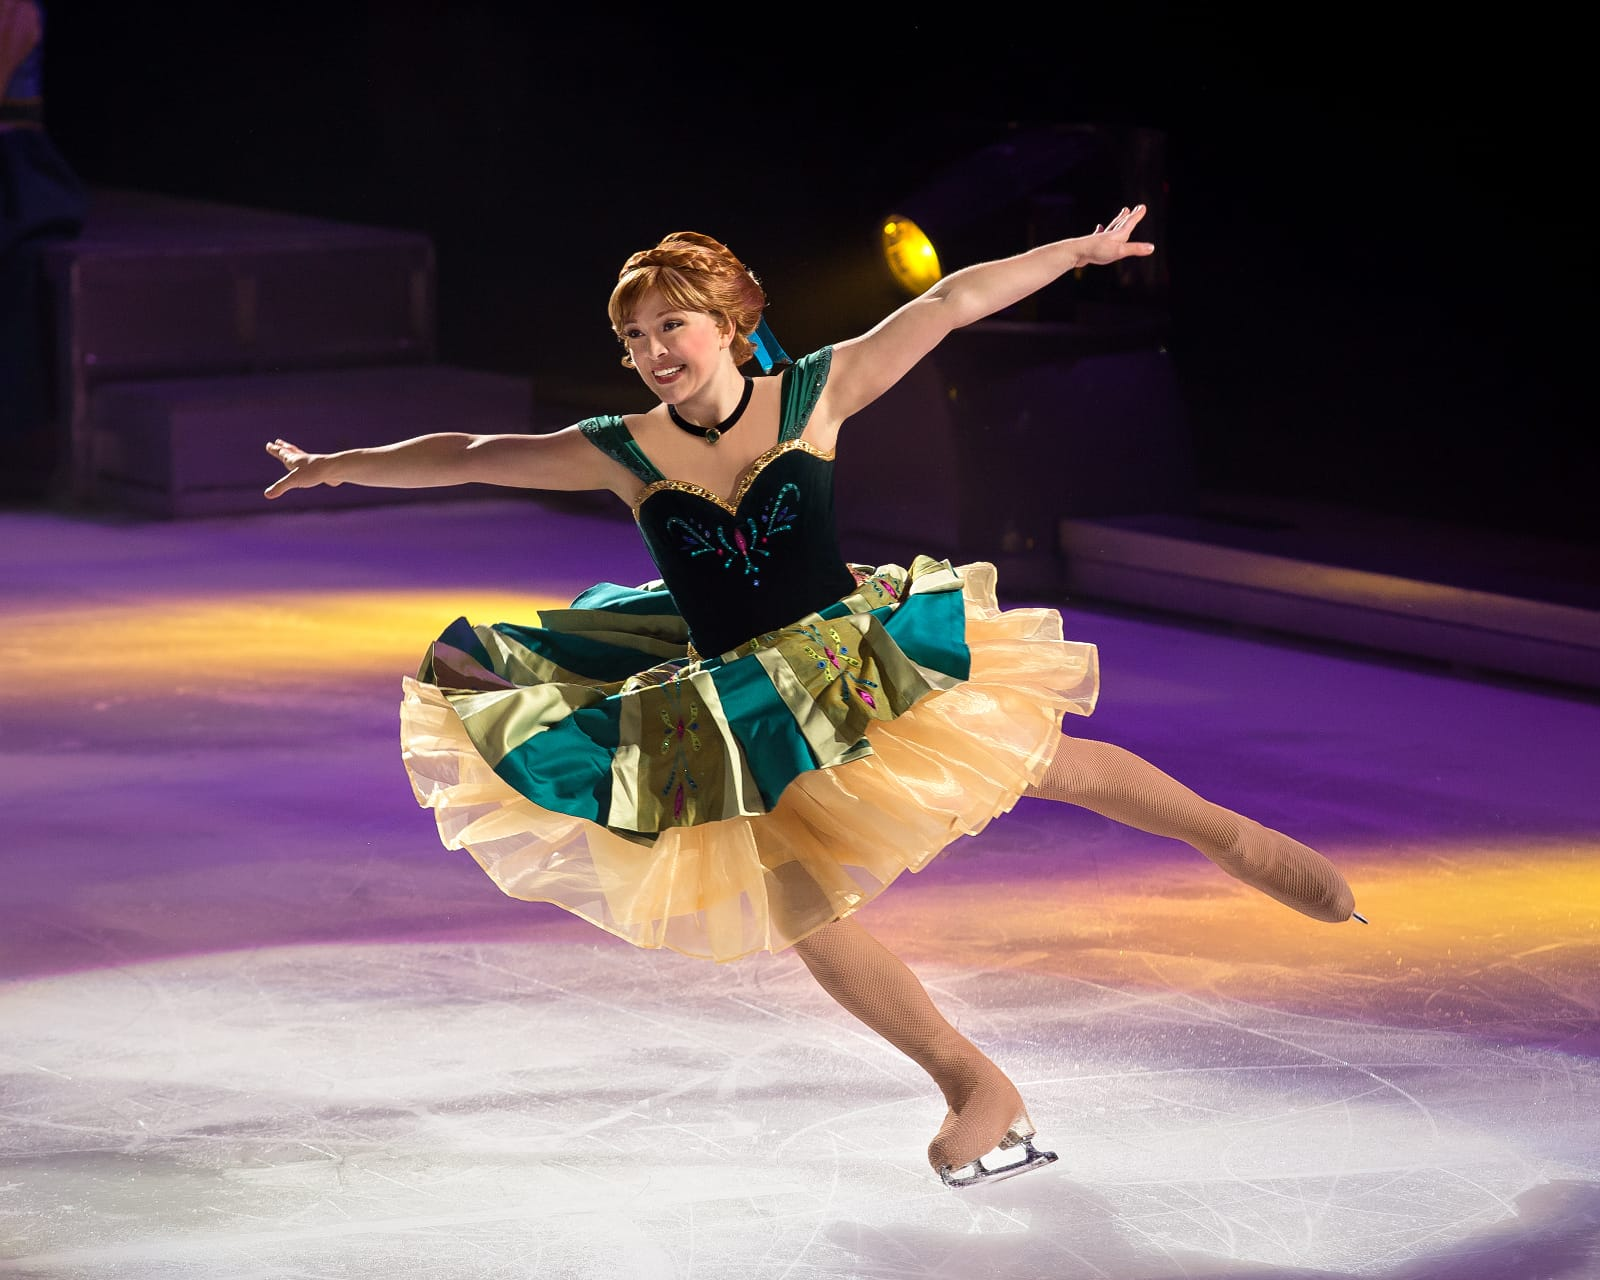 """Disney on Ice is returning to Orlando at the Amway Center on Friday, September 7th through Sunday, September 9th, with Disney's newest show """"Mickey's Search Party"""". Disney on Ice. Disney On Ice presents Mickey's Search Party brings the magic closer to fans than ever before through dynamic and immersive moments that take place on the ice, in the air and in the seats."""